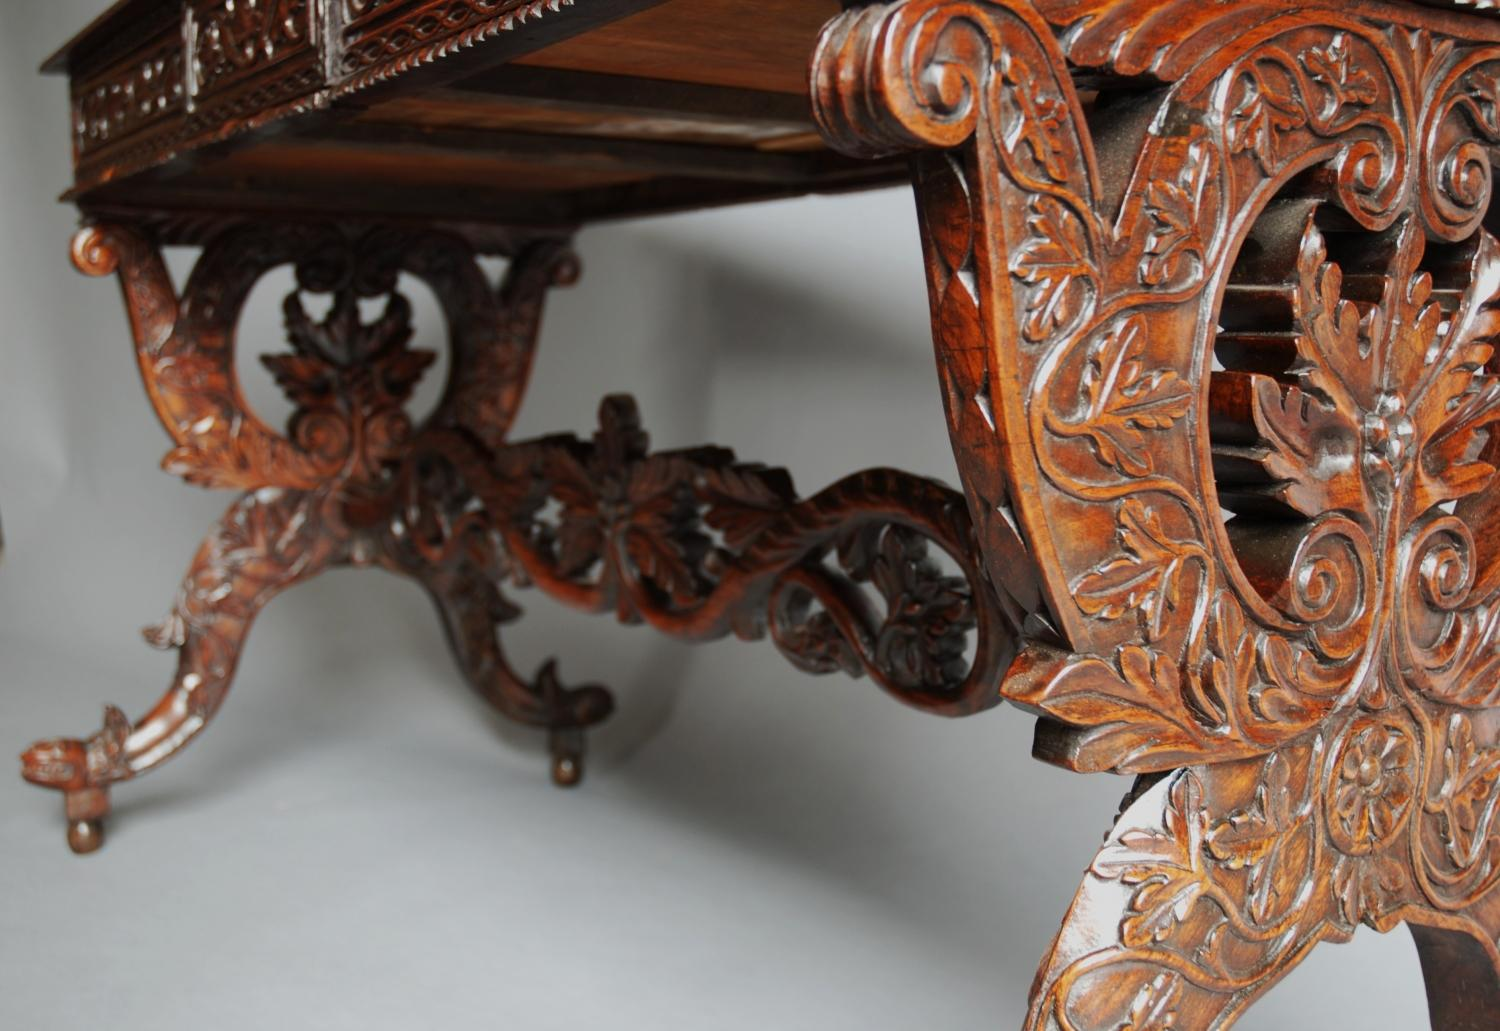 Mid 19thc Anglo Indian hardwood table